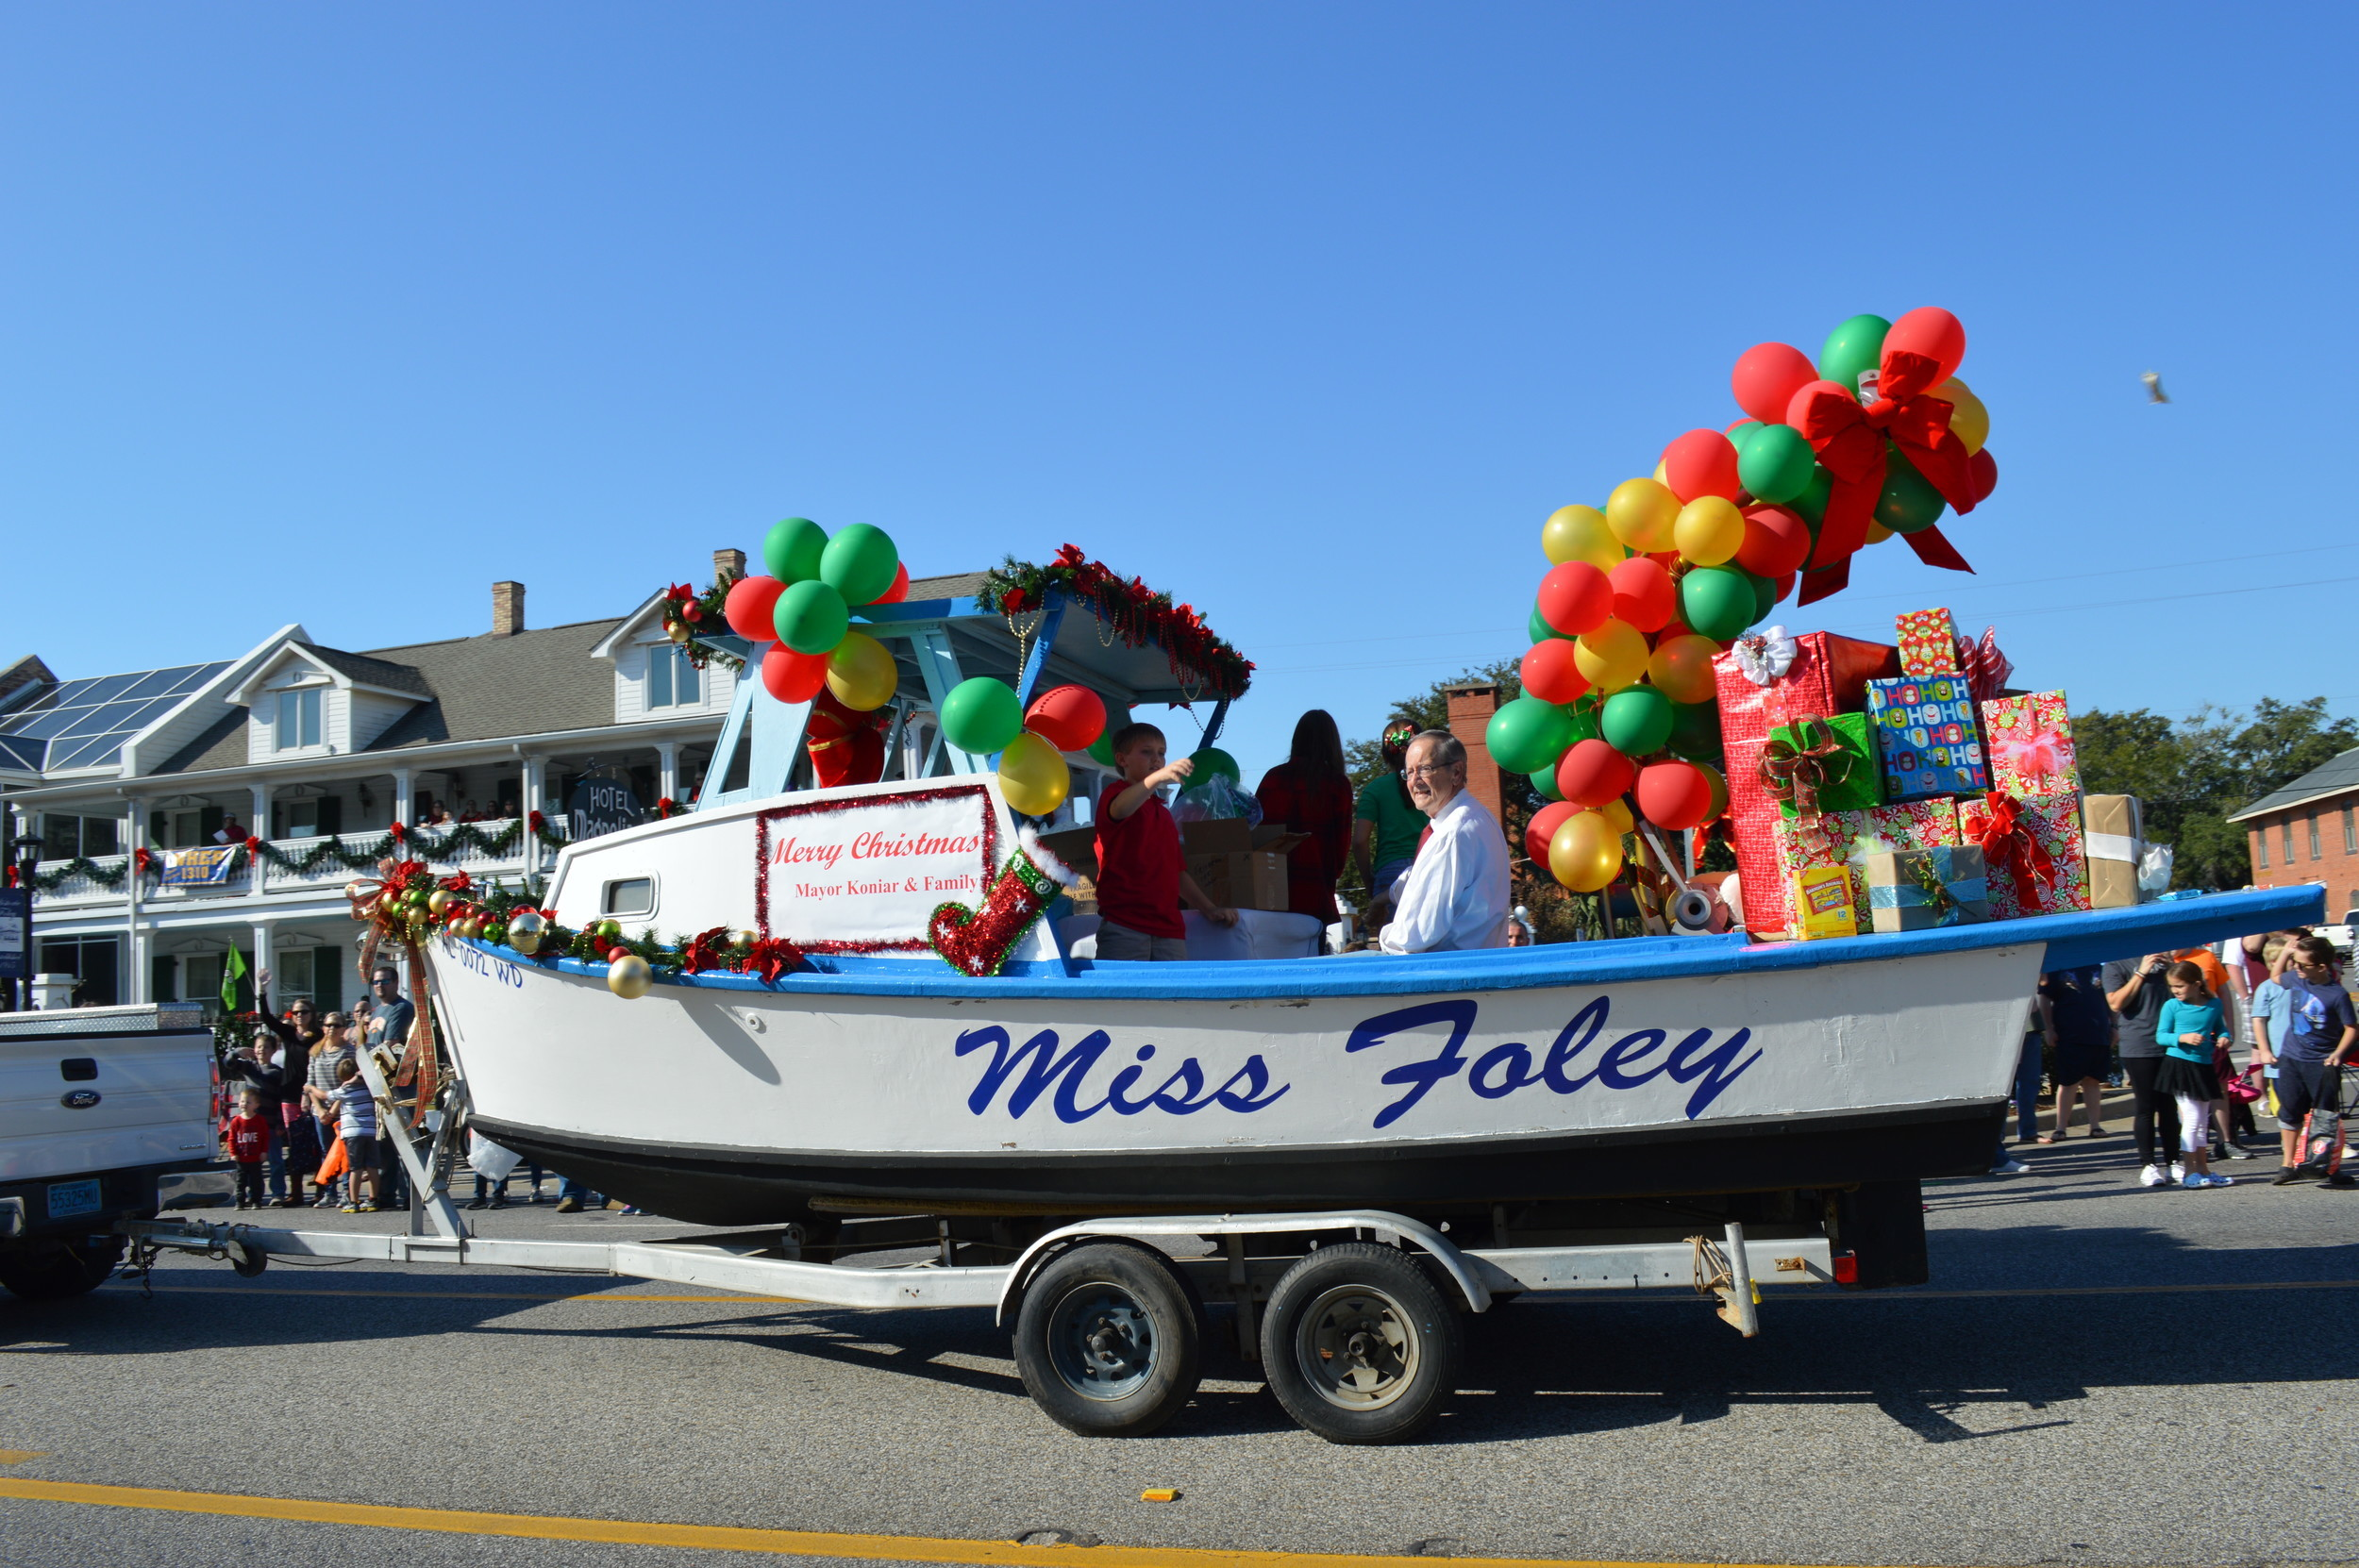 Foley Christmas Parade 2020 Want to participate in the upcoming Foley Christmas Parade